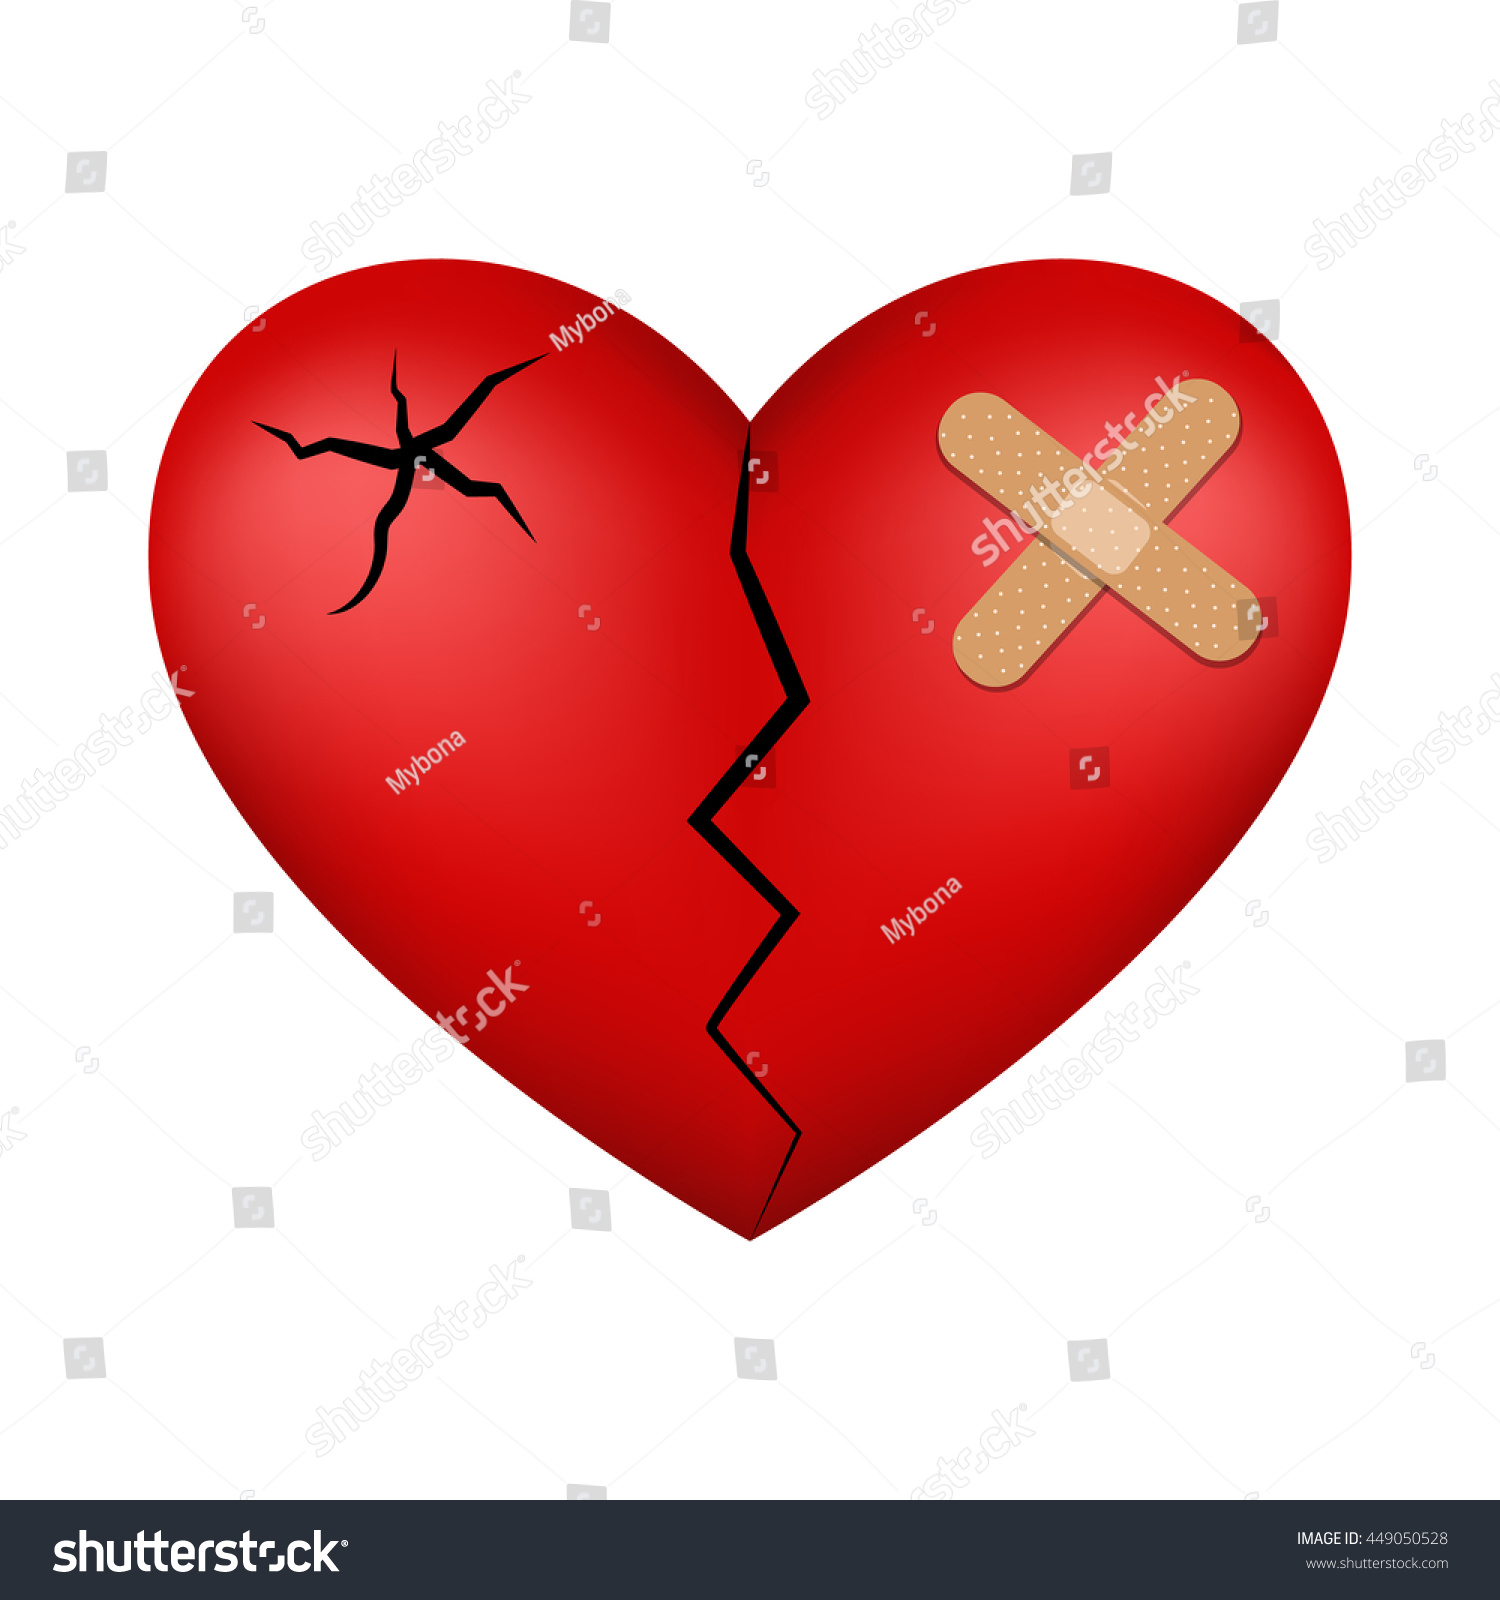 Cute Clip Art - Mending Broken Heart, Broken Heart With Plaster ...